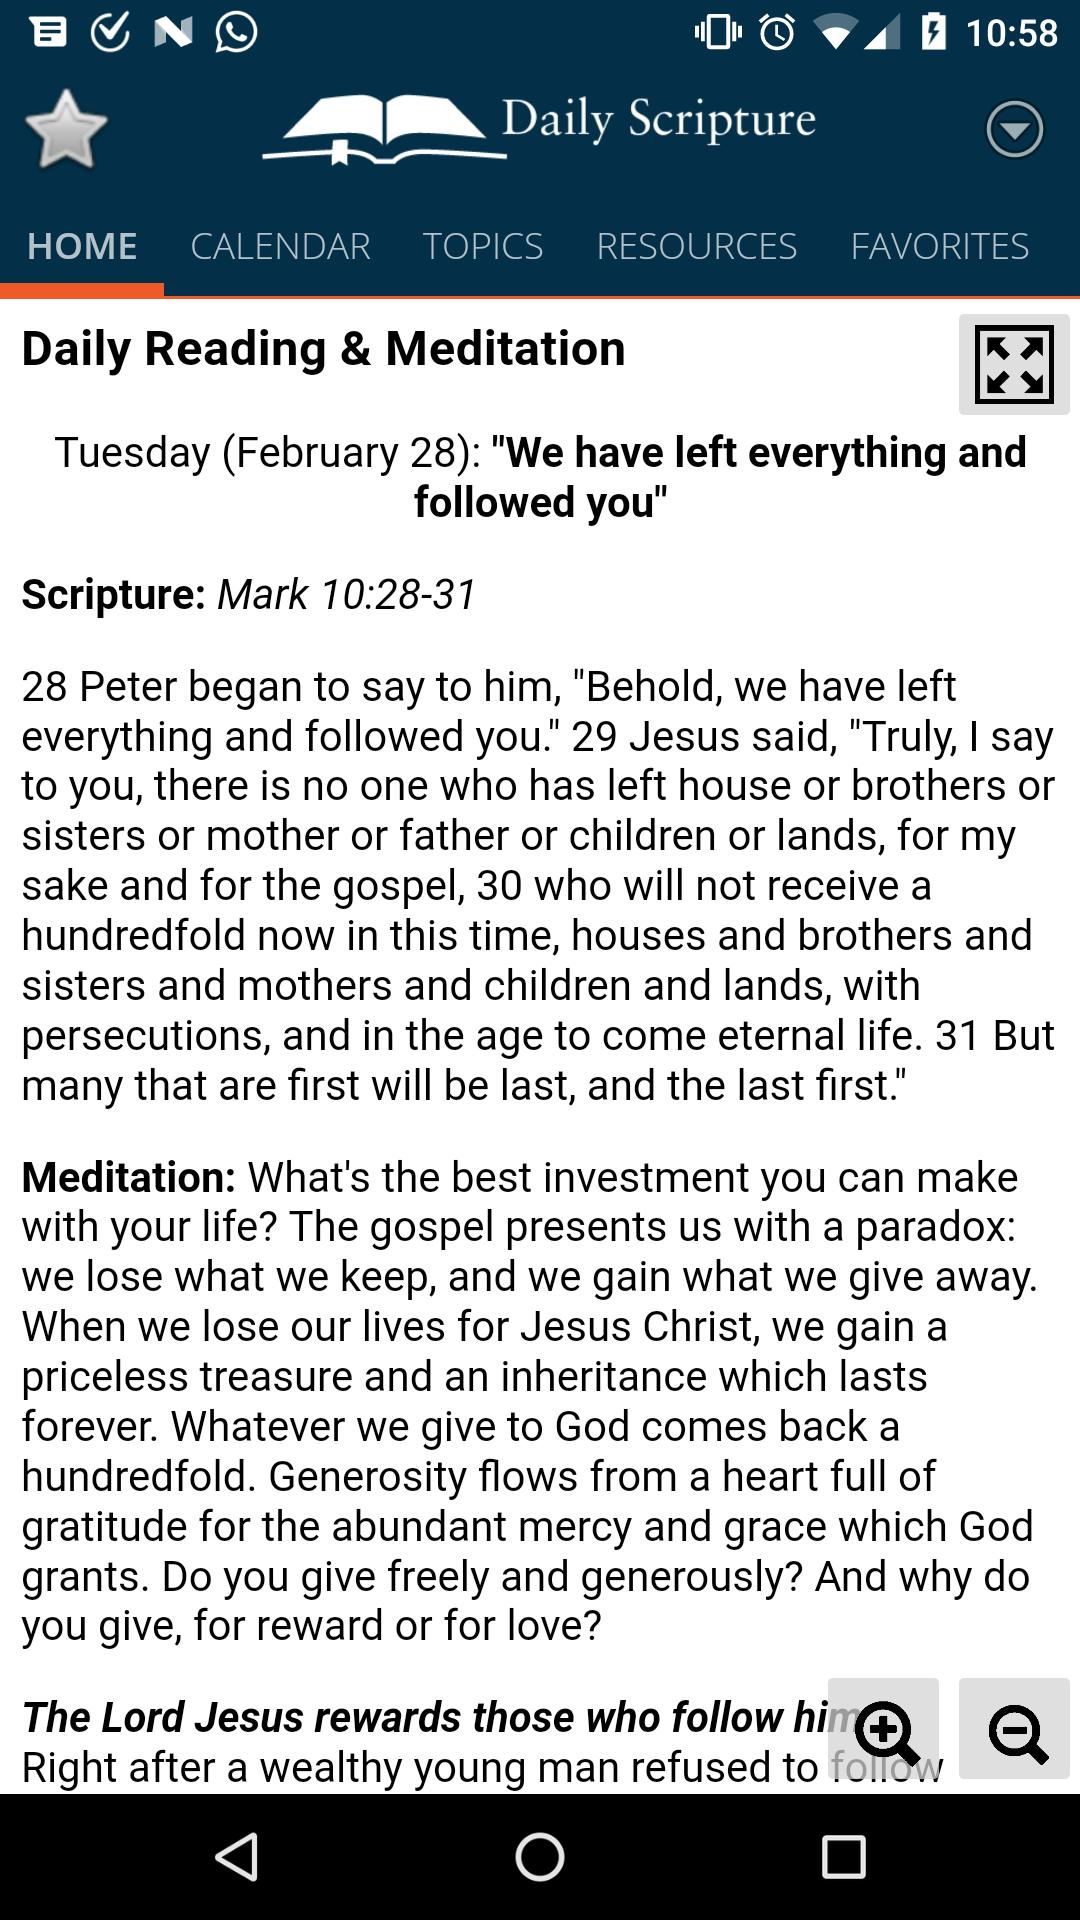 Daily Scripture for Android - APK Download